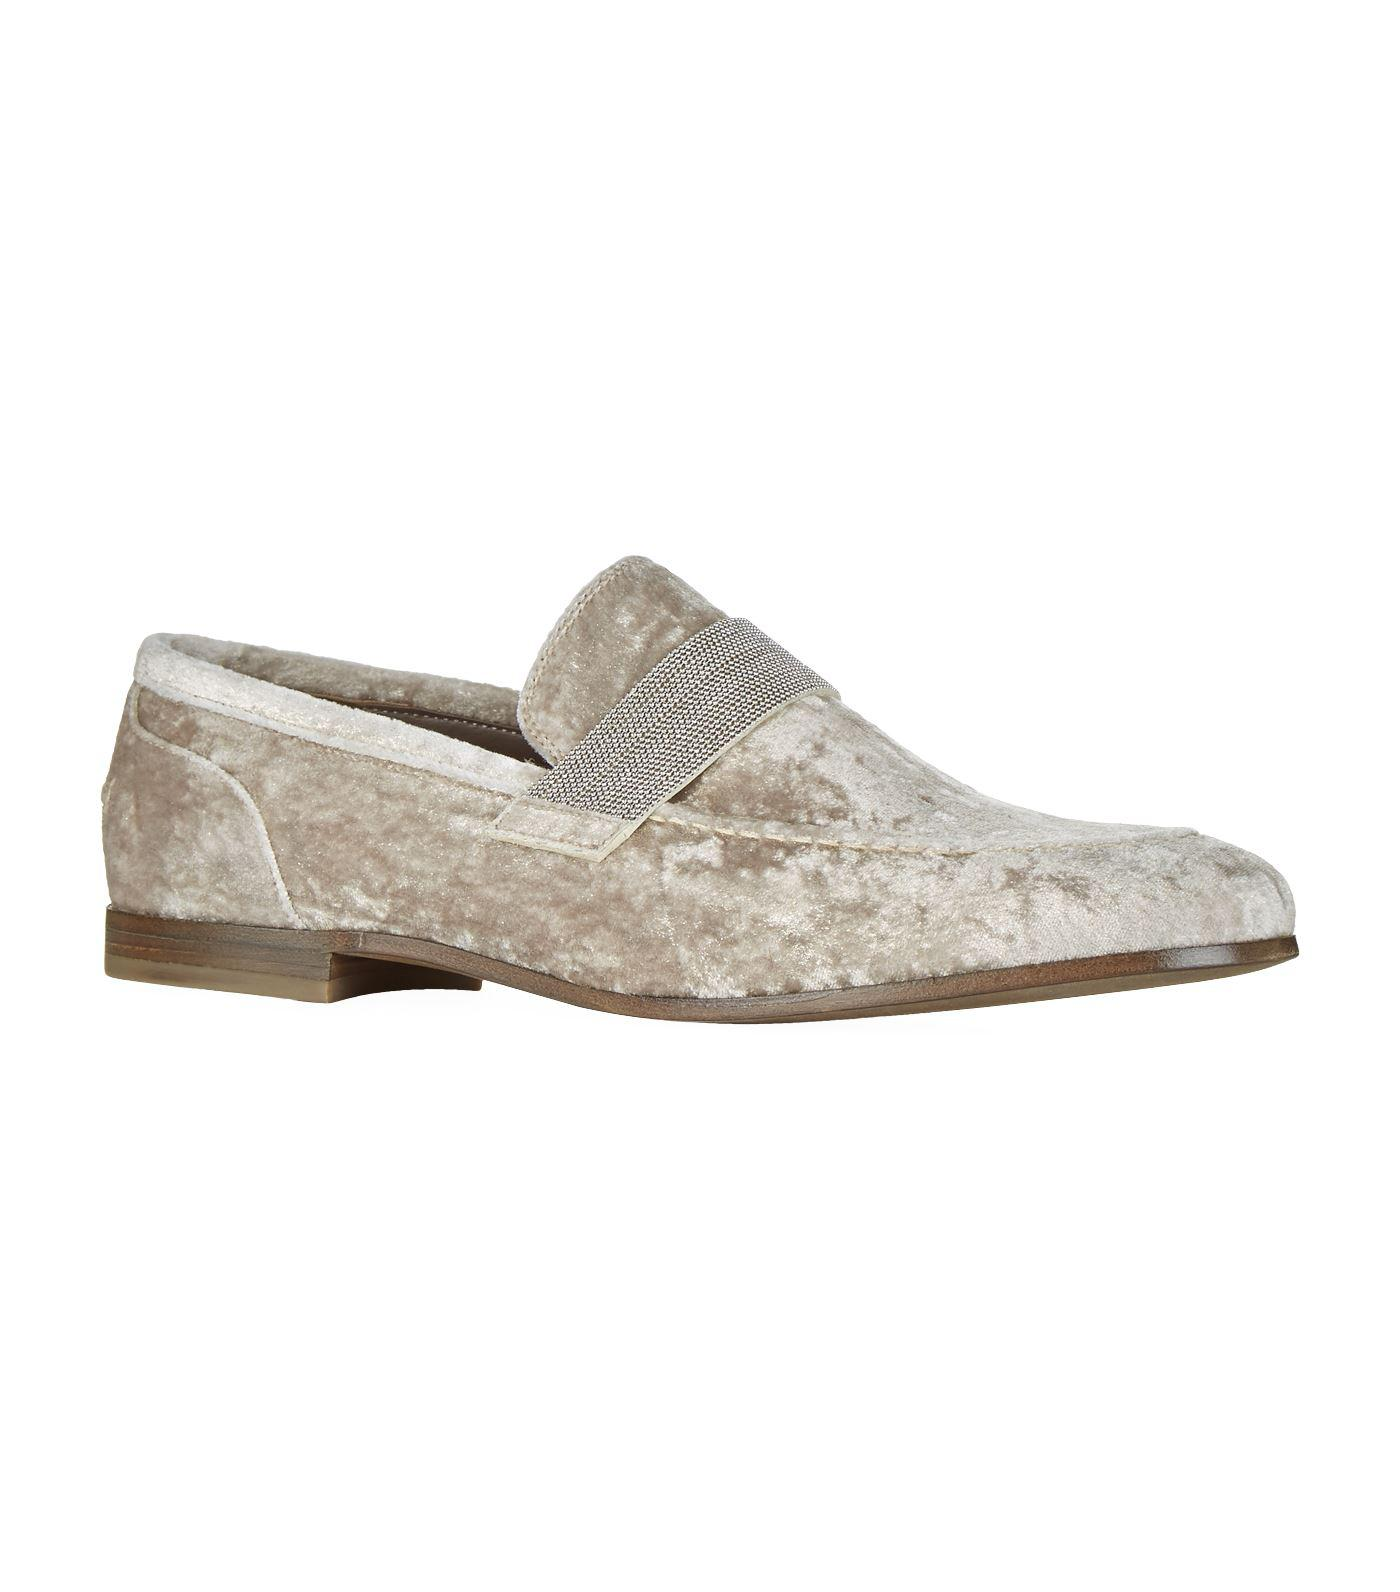 Brunello Cucinelli Velvet slippers For sale online clearance store cheap price recommend cheap price 6yO0v60